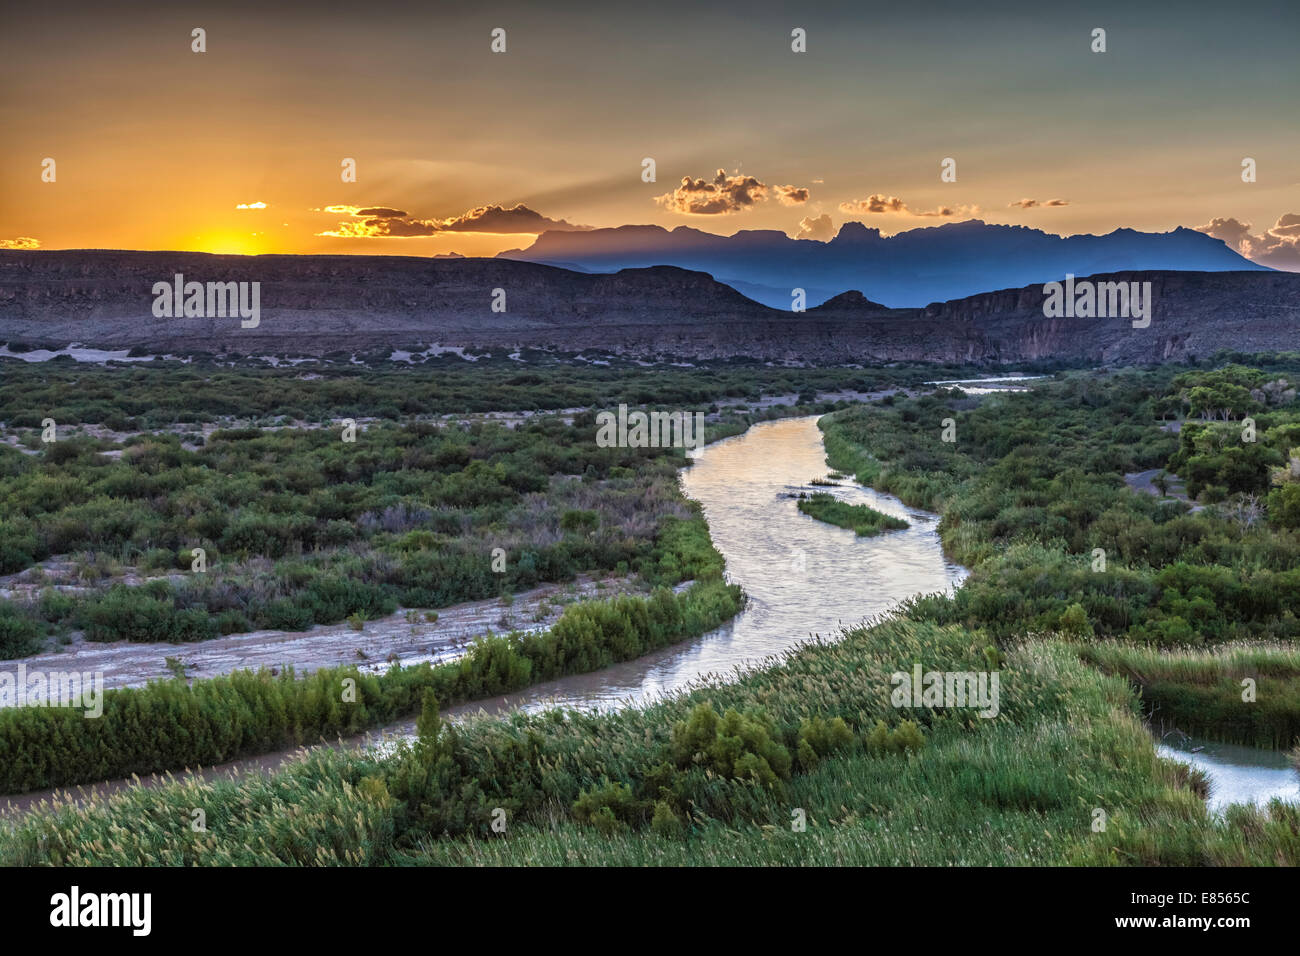 Sunset over Chisos Mountains with Rio Grande River in Big Bend National Park. Stock Photo